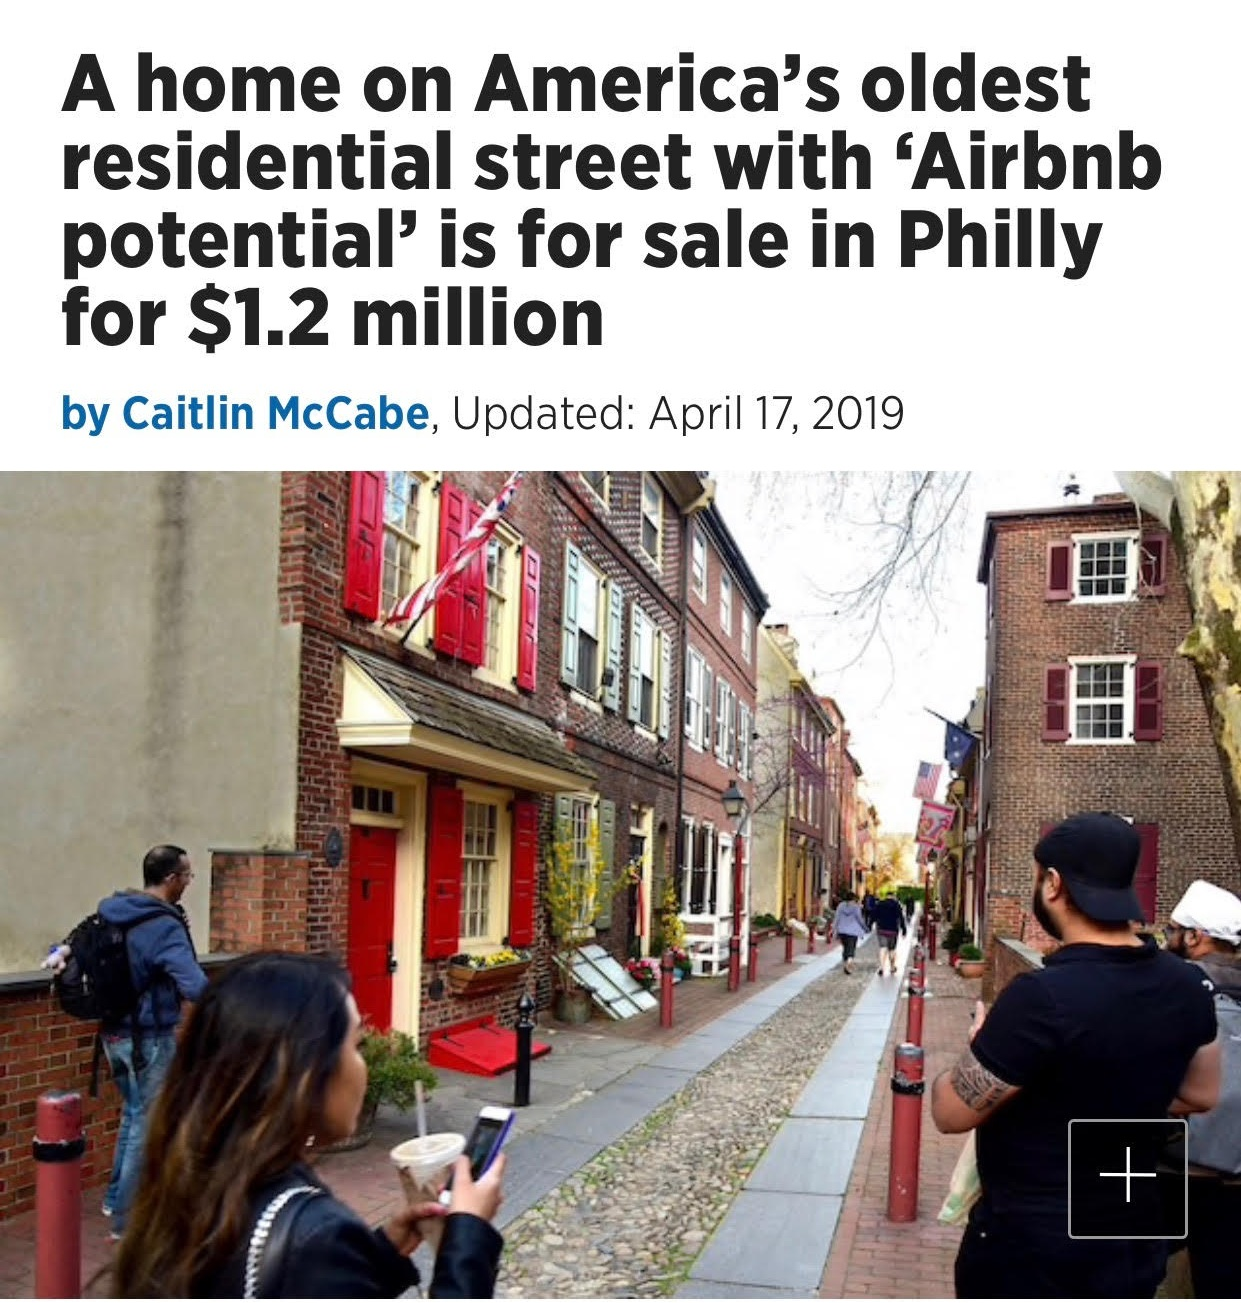 """""""It's narrow and it's cozy, but we really see the buyer of this property being someone who can rent the property out based on its historical value and its proximity to historical attractions in Philadelphia,"""" said Ryan McManus, the listing agent and founder of the real estate company Agent PHL. """"It's a historical attraction itself. That's [a] market for Airbnb."""""""